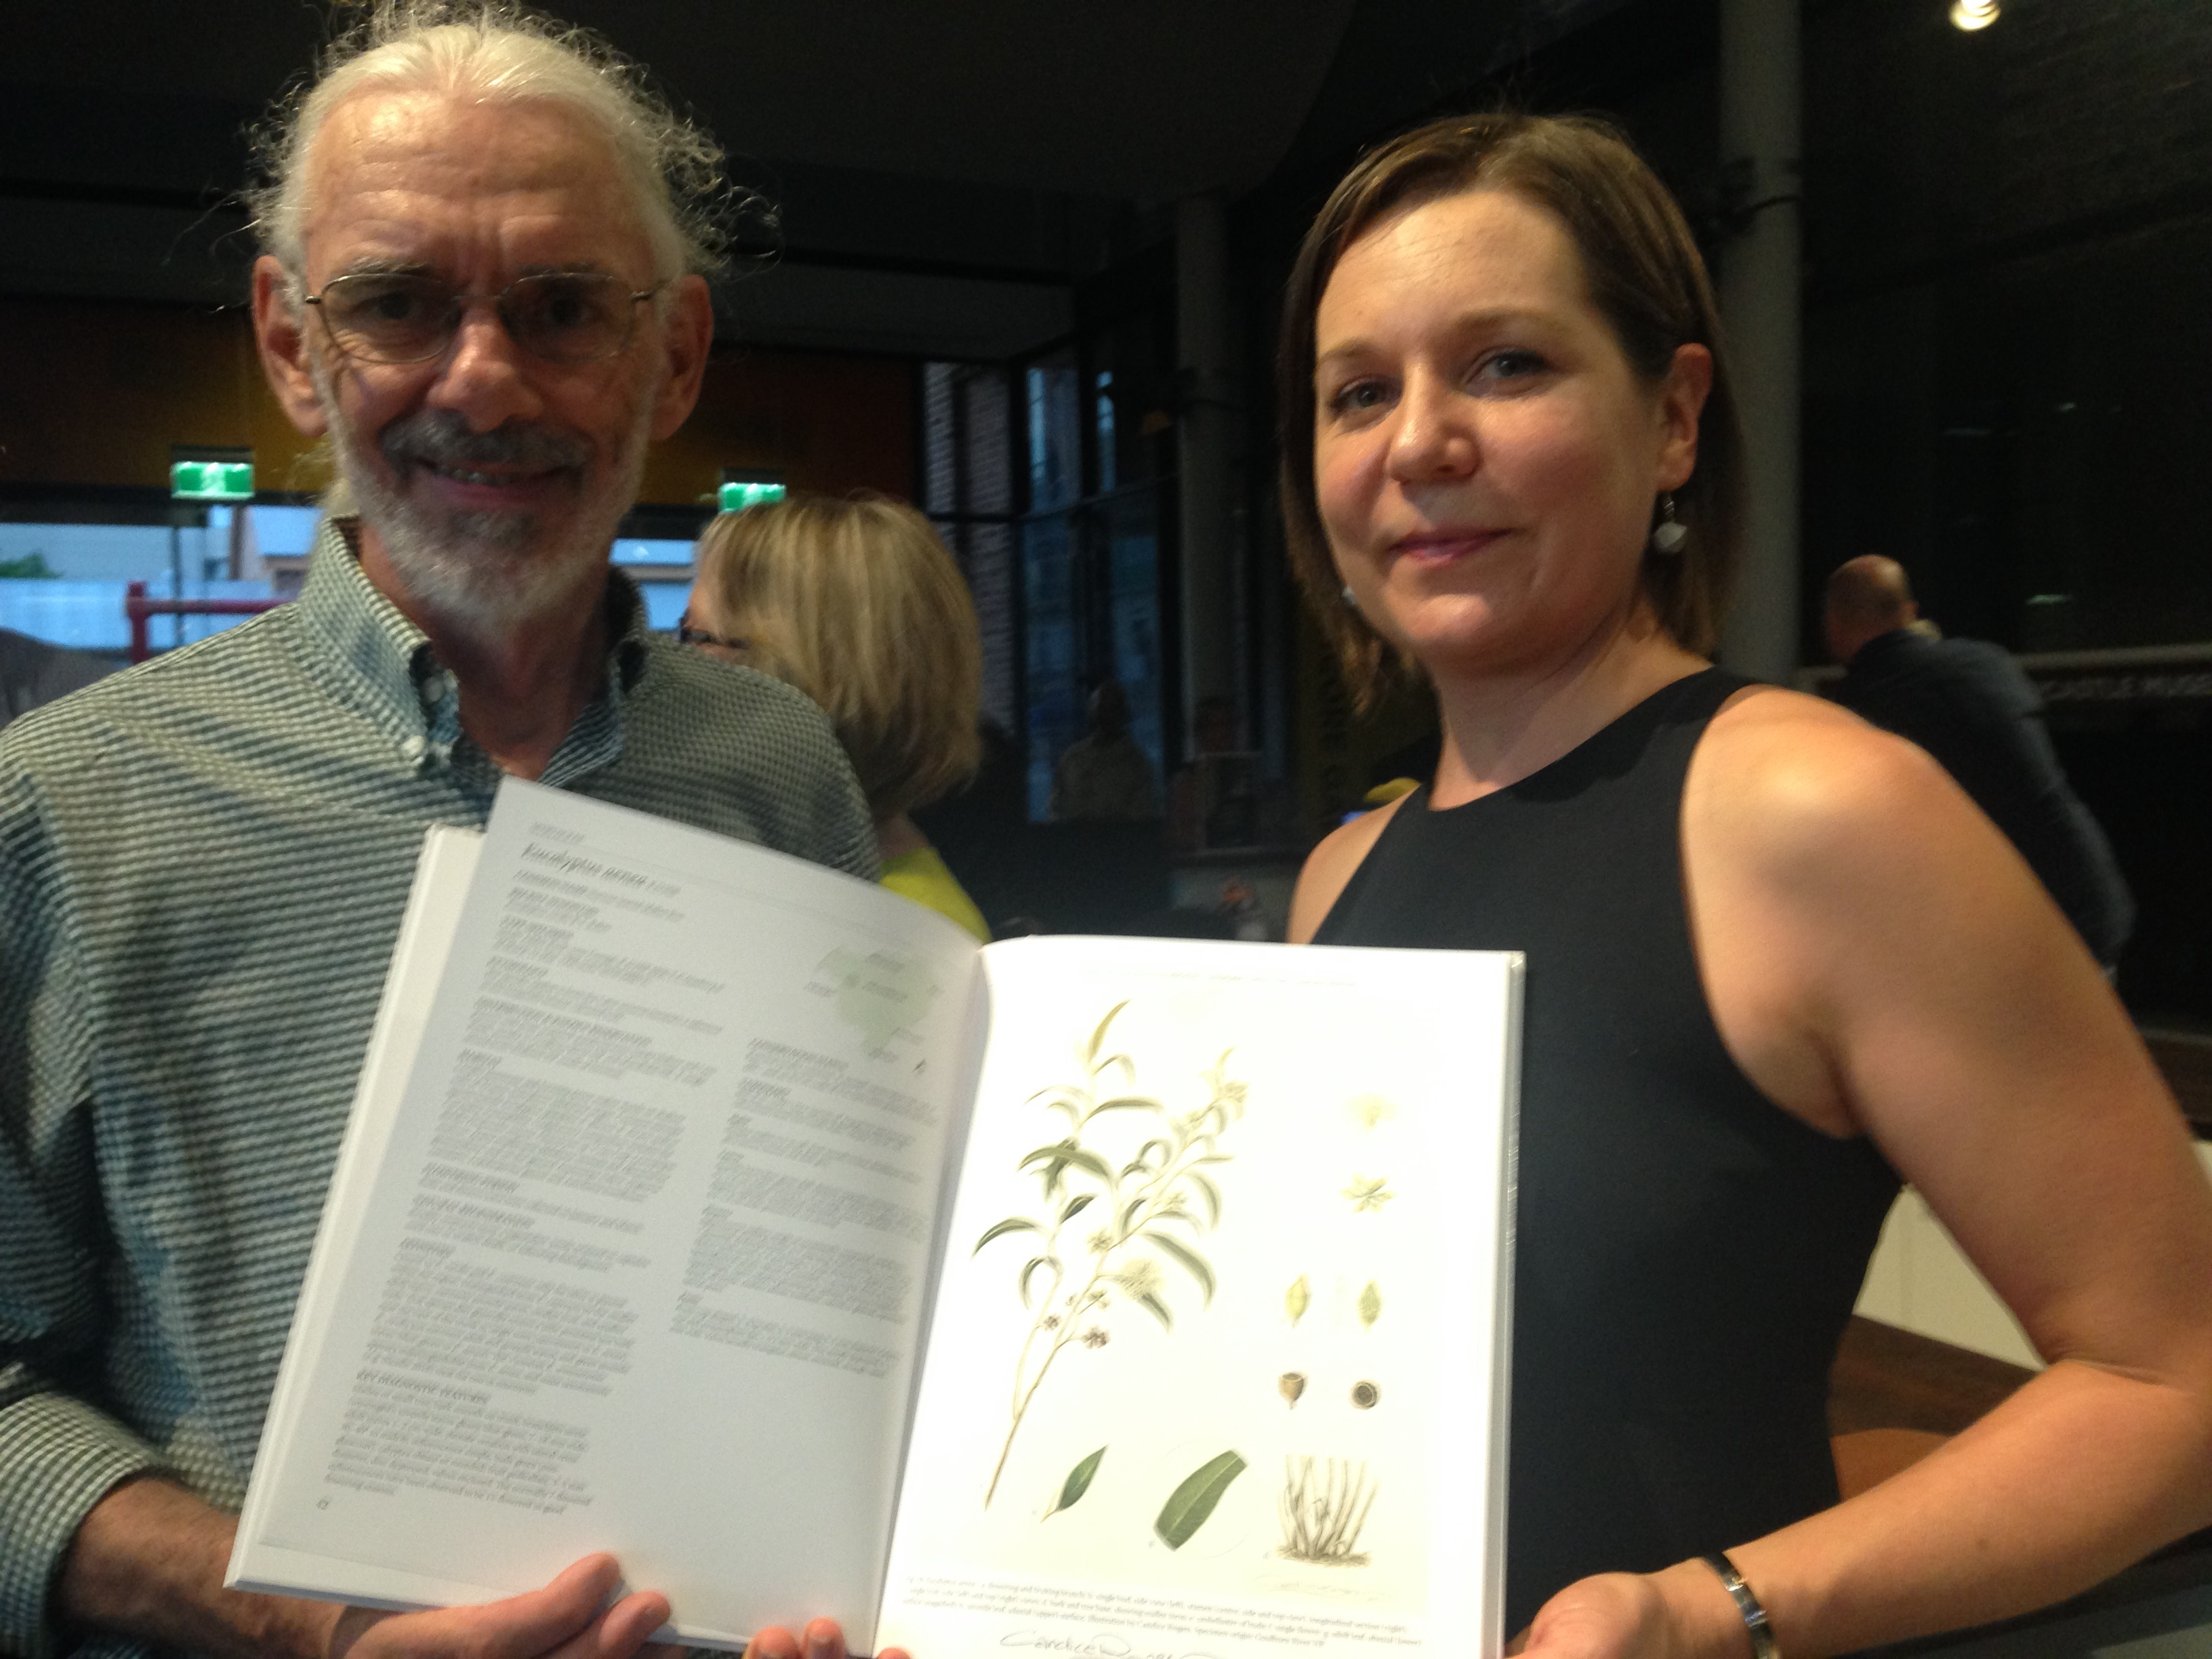 Andrew with illustrator Candice Rogers at the book launch